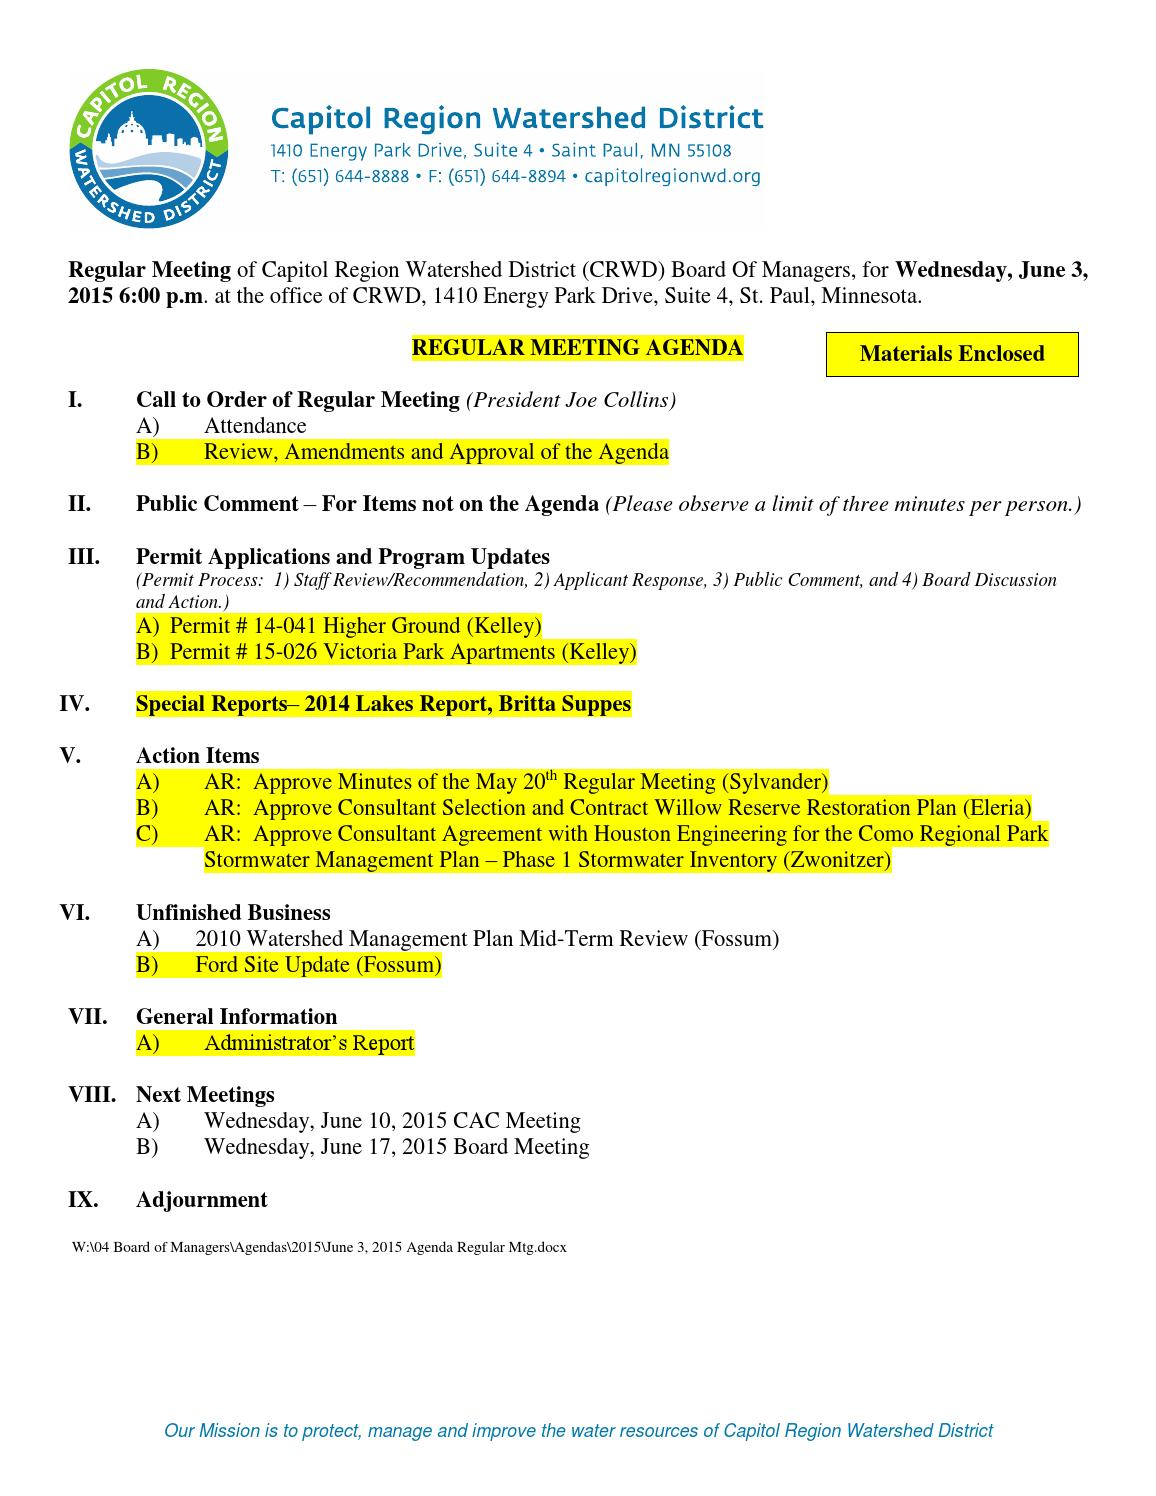 Board of managers packet june 3, 2015 by Capitol Region